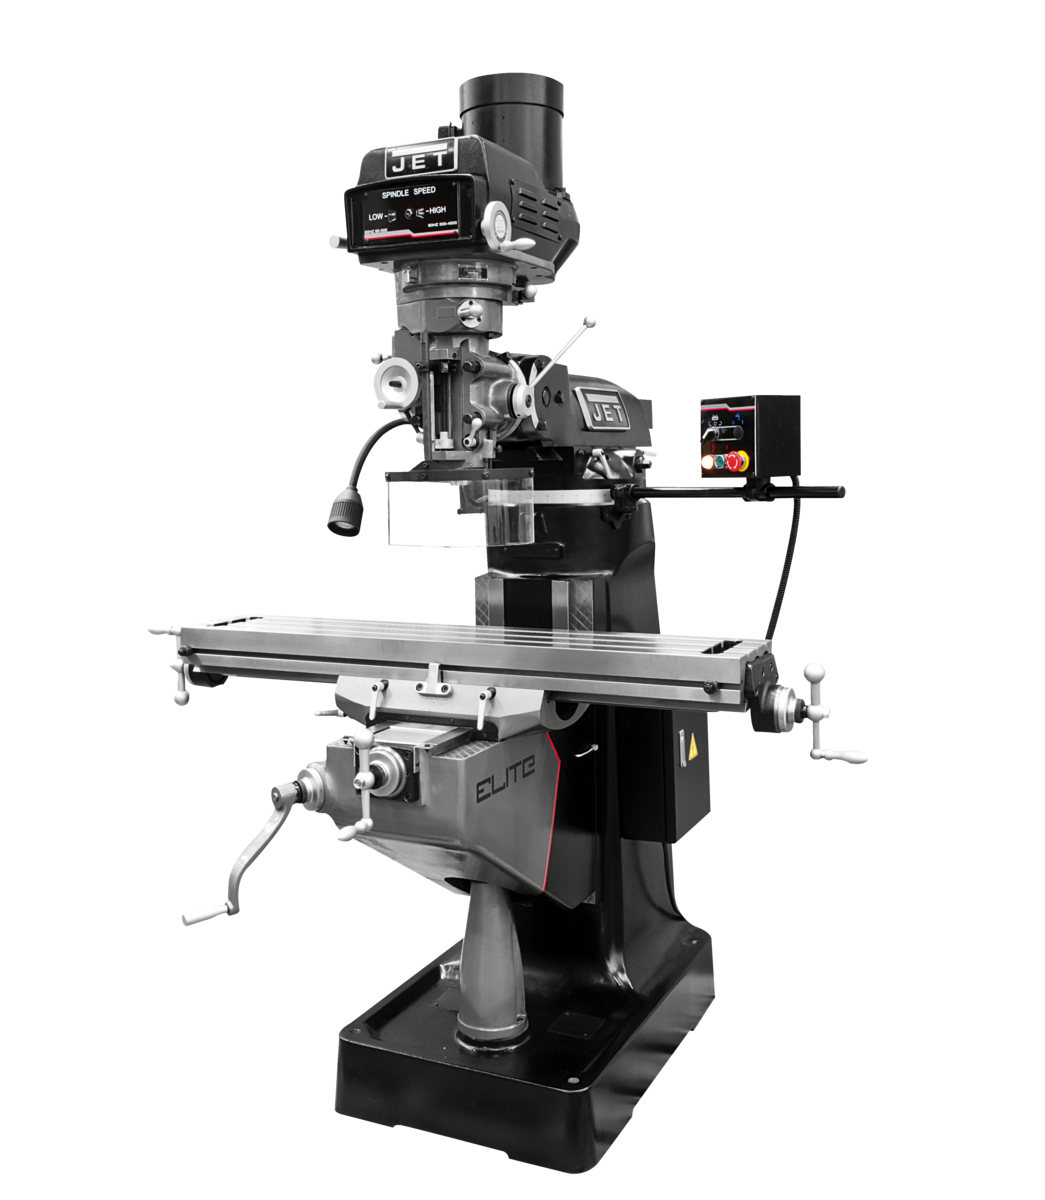 ETM-949 Mill with 3-Axis ACU-RITE 203 (Knee) DRO and Servo X, Y, Z-Axis Powerfeeds